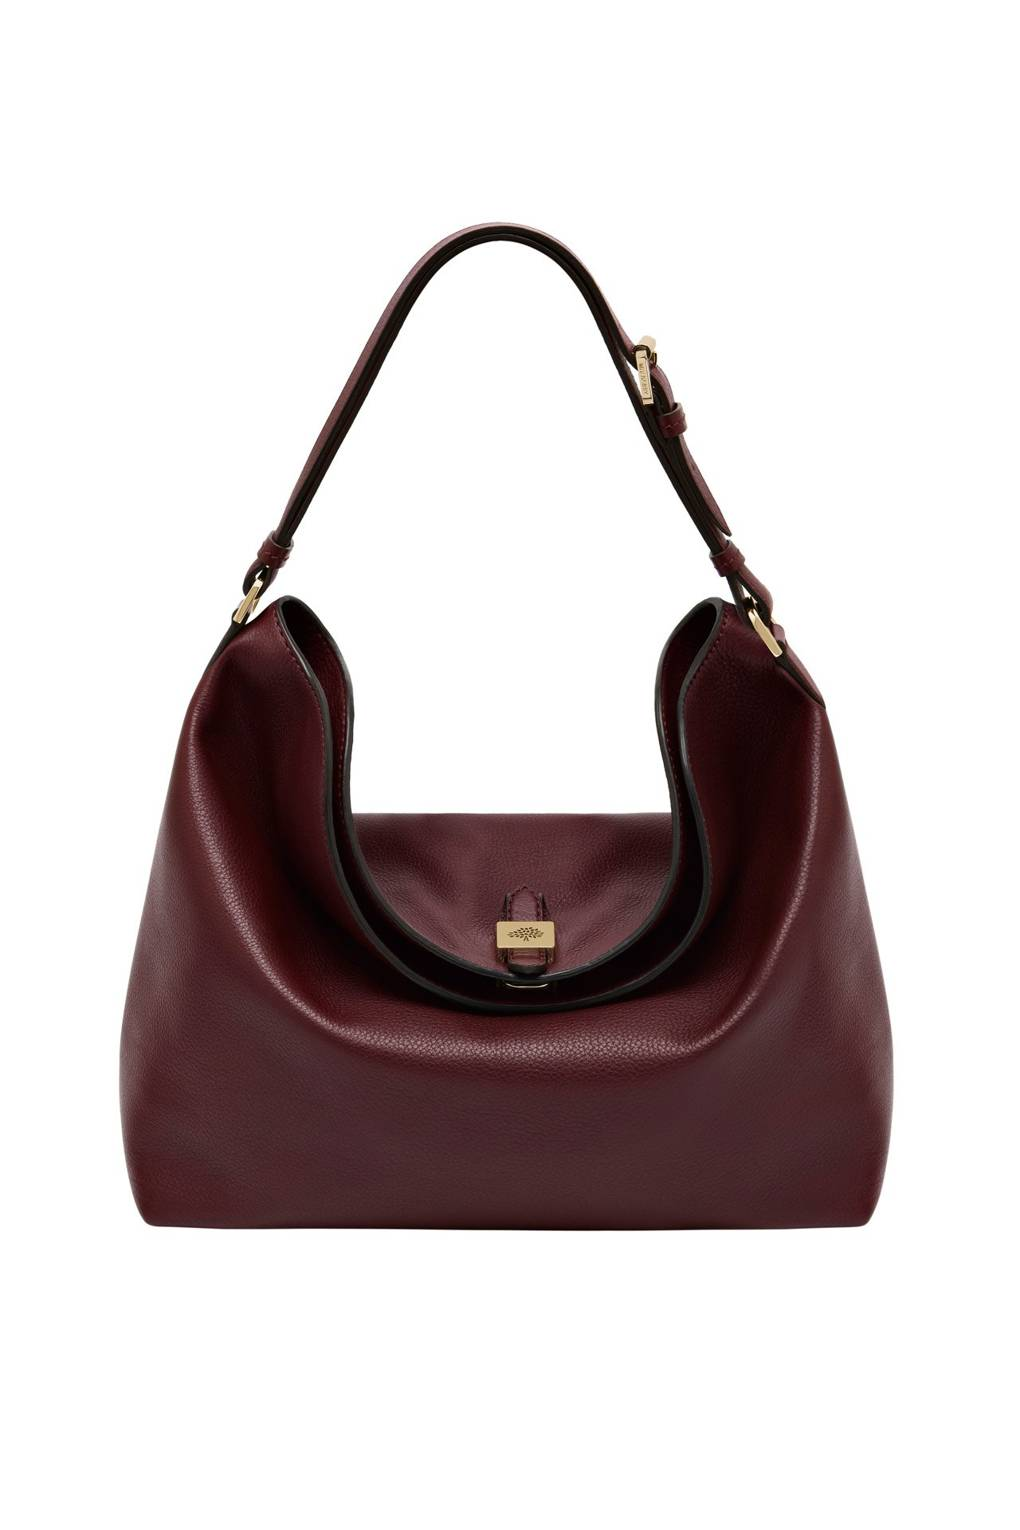 5287b92e83ae Mulberry Tessie Bag Exclusive Interview and Quotes